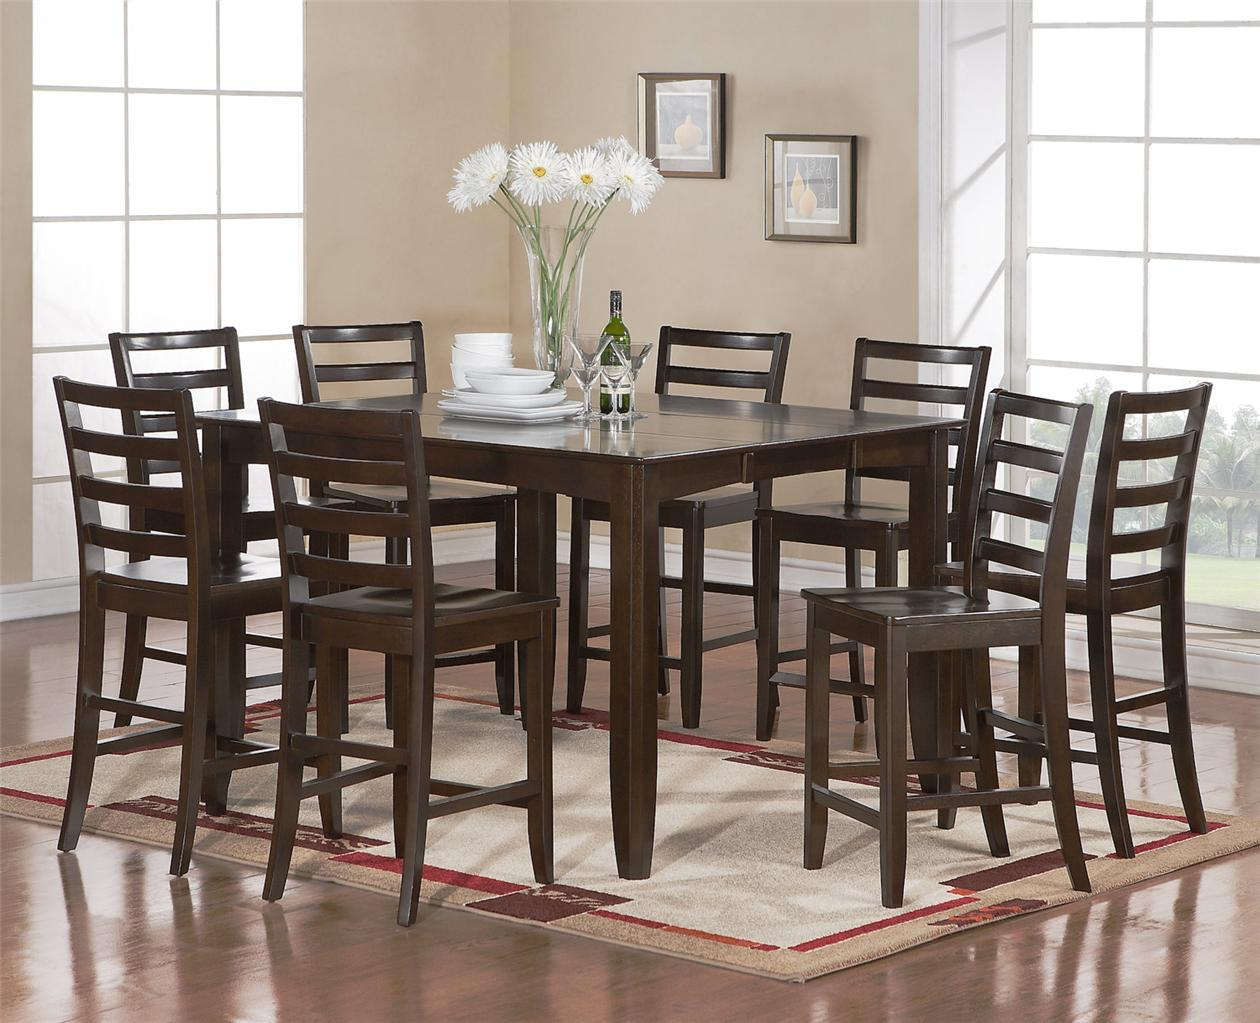 9 PC SQUARE DINETTE DINING COUNTER HEIGHT TABLE amp 8 WOOD  : 493872425o from www.ebay.com size 1260 x 1023 jpeg 164kB